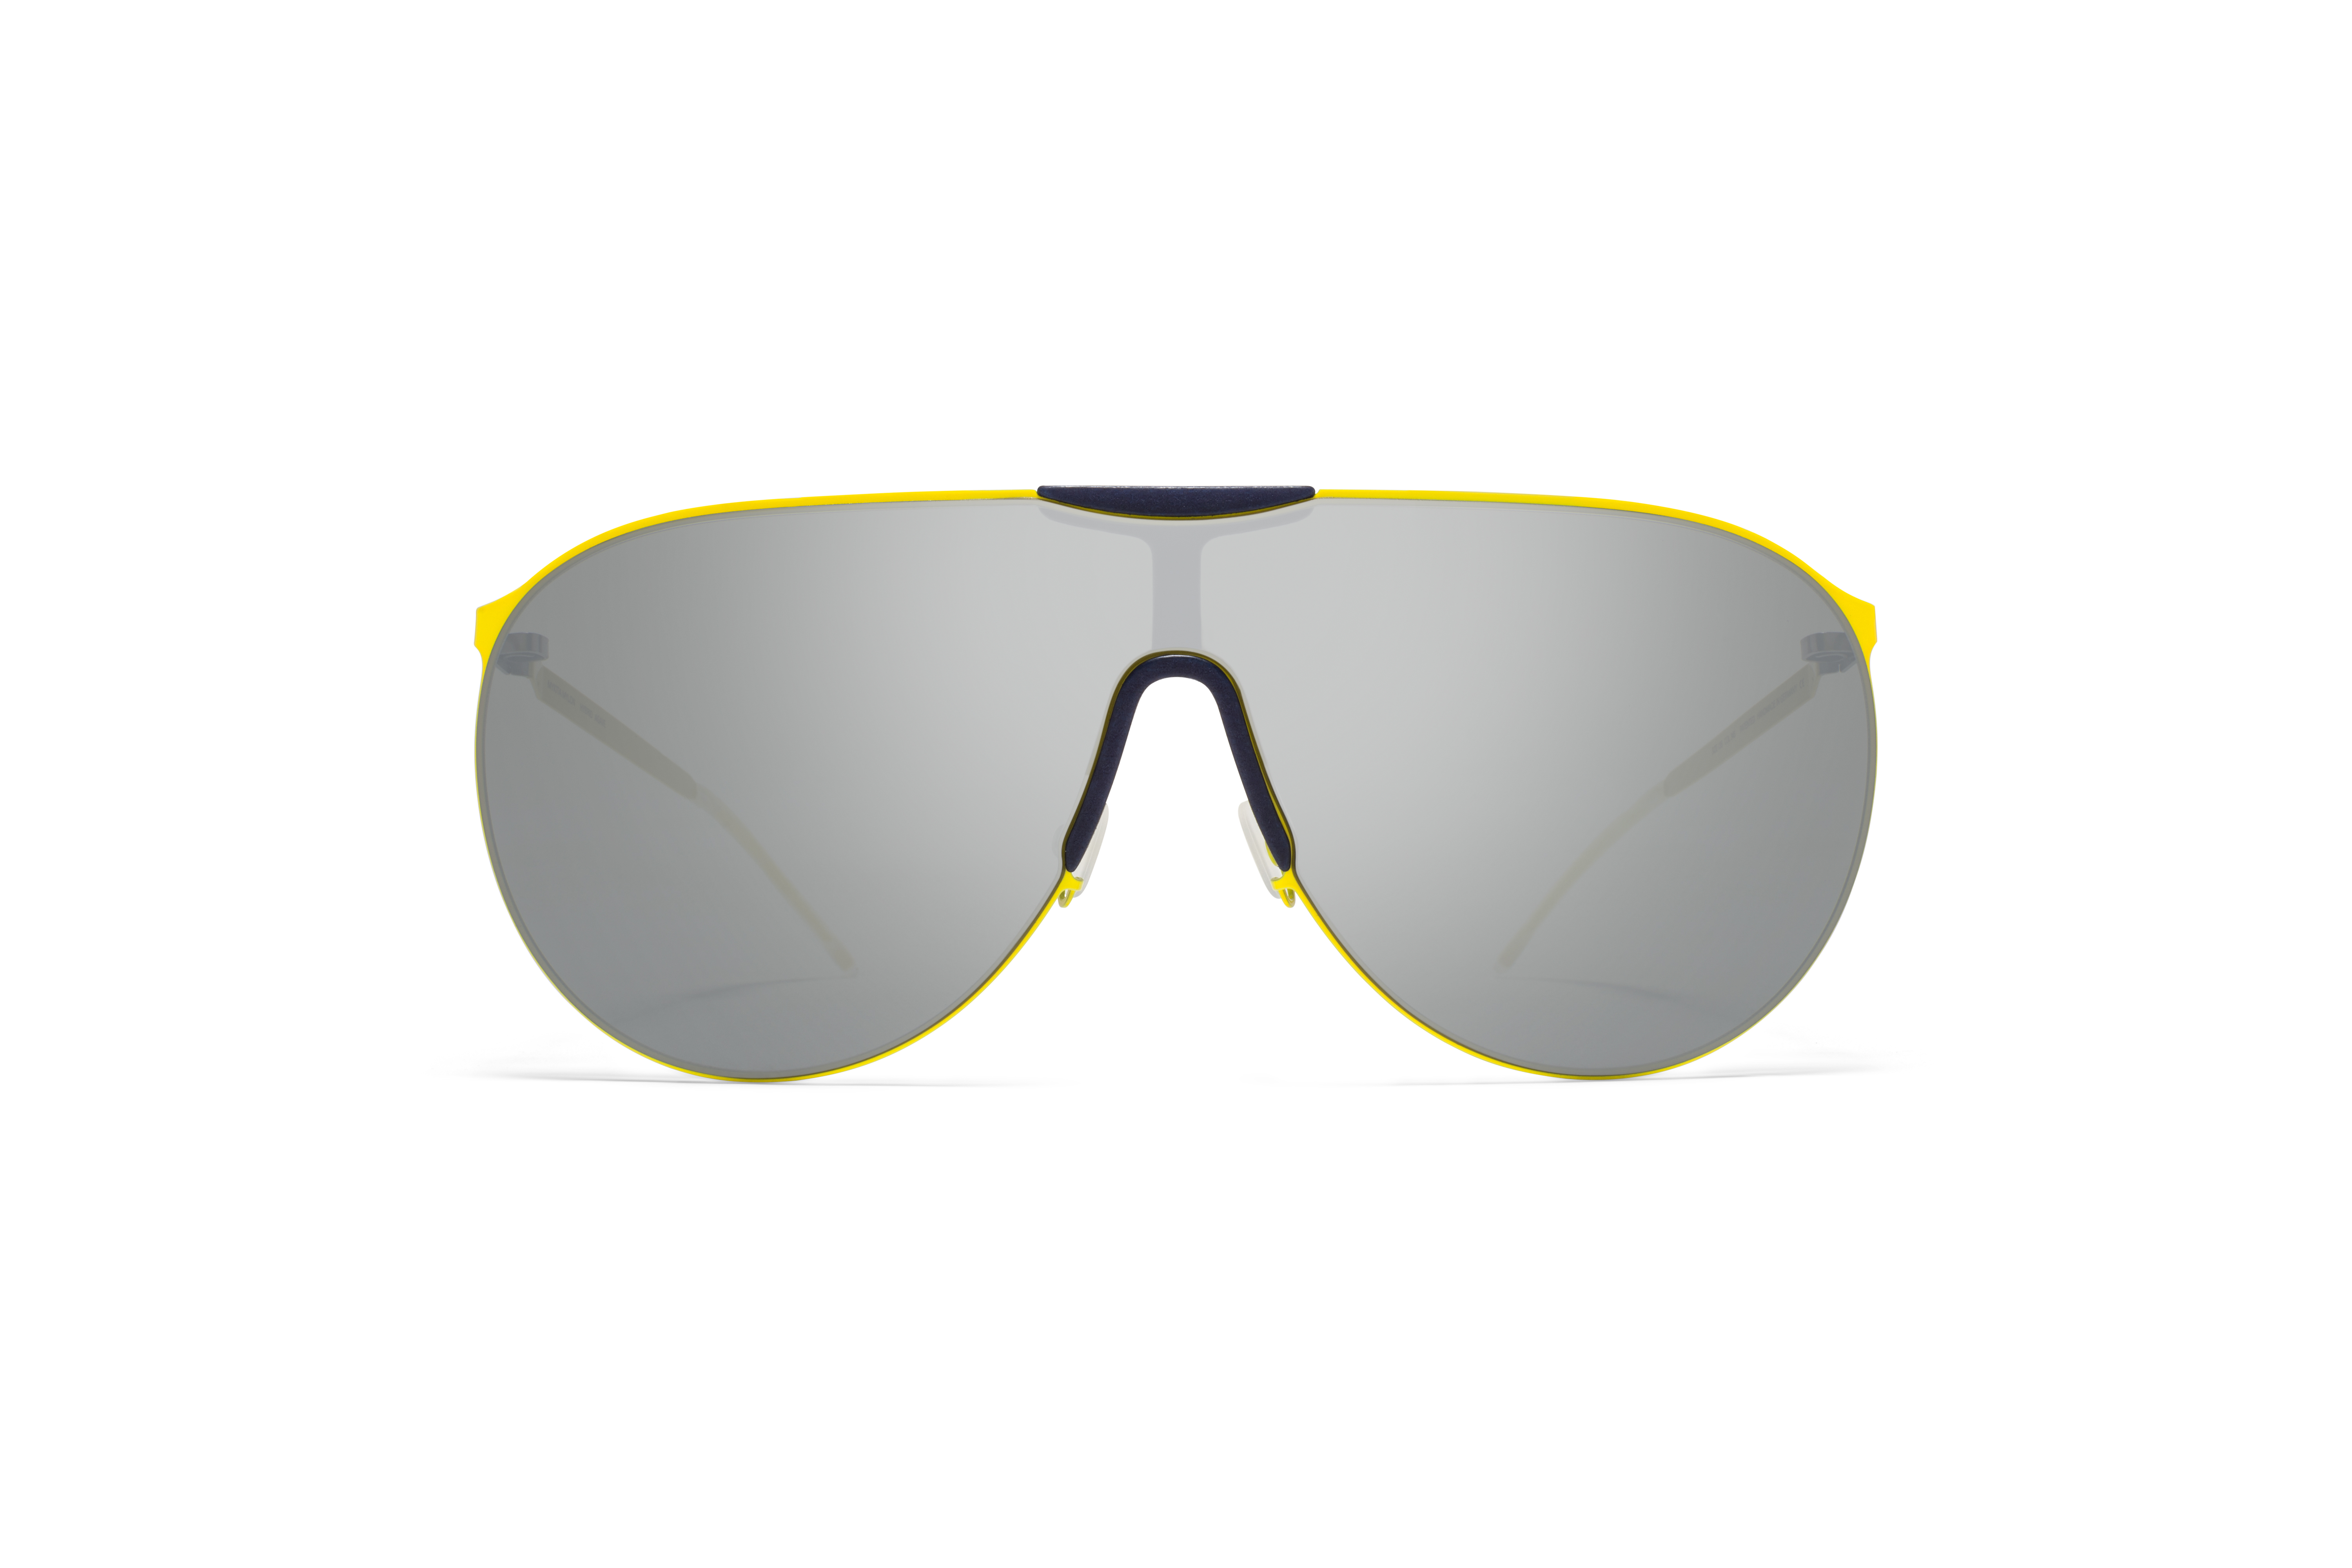 MYKITA Mylon Sun Agave Mh19 Navy Blue Neon Yellow Silver Flash Shield